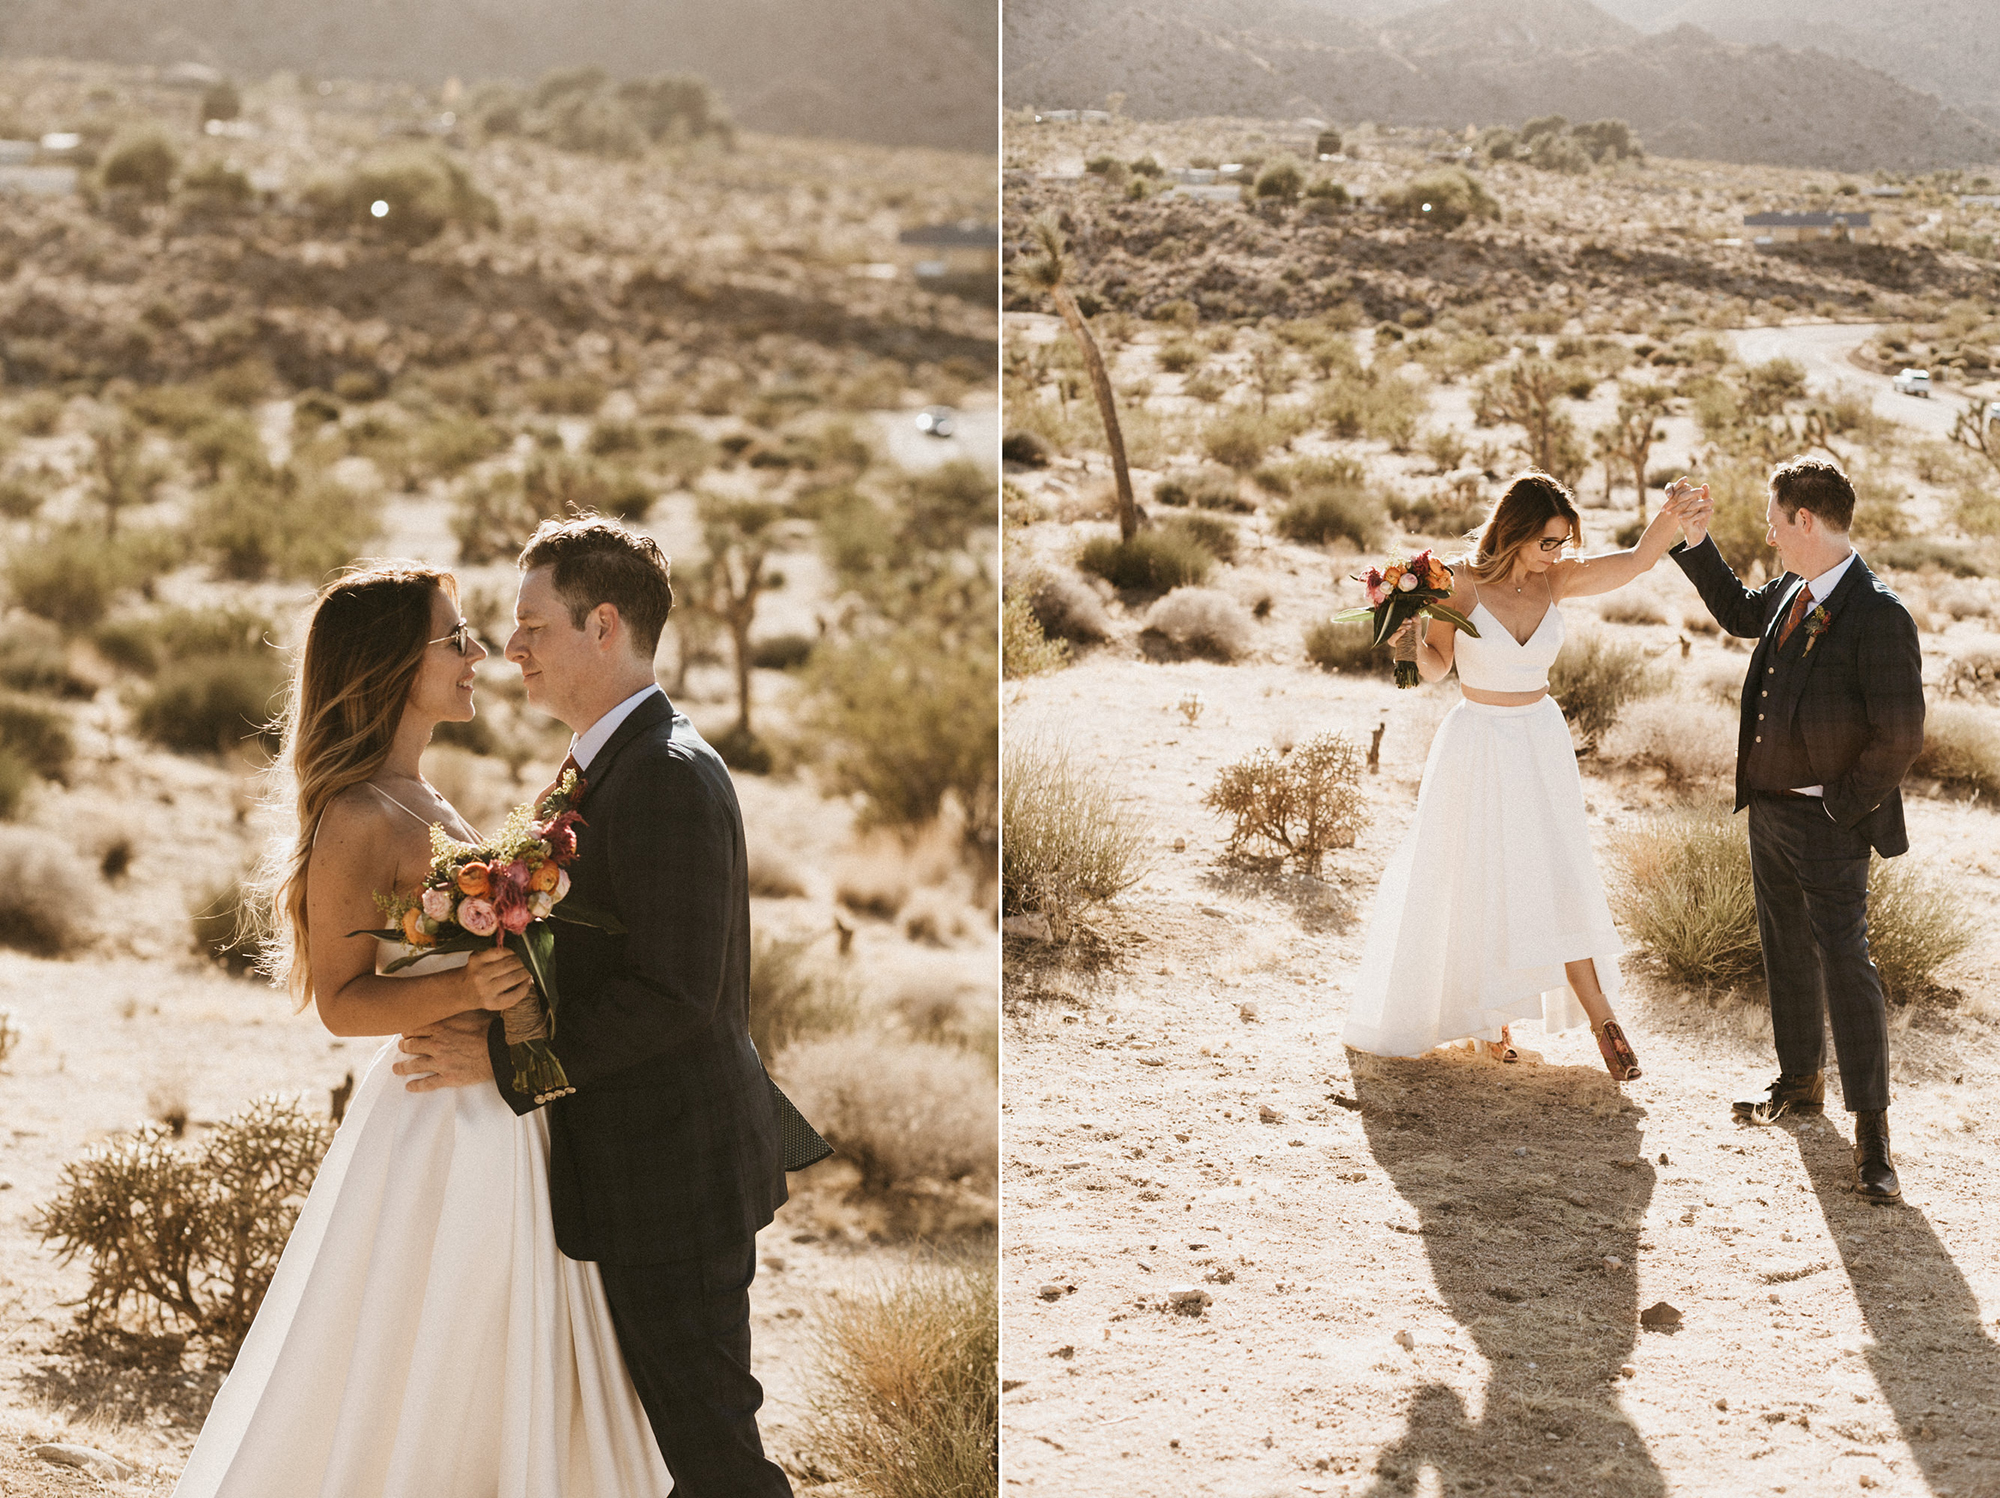 sacred_sands_joshua_tree_wedding-45.jpg